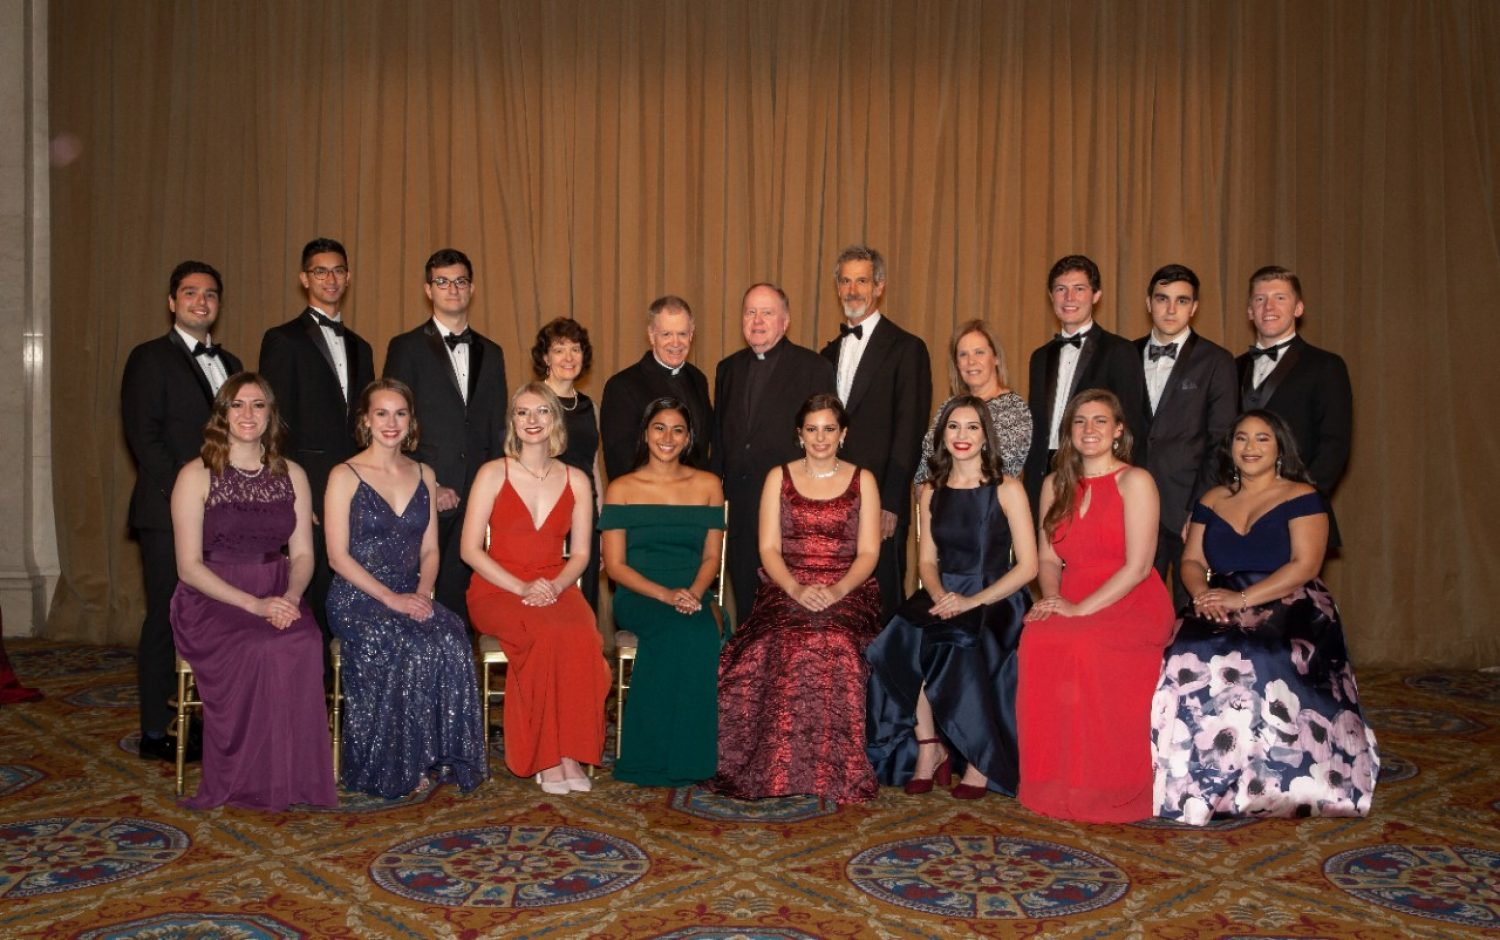 Group photograph of presidential scholars at the Wall Street Tribute Dinner